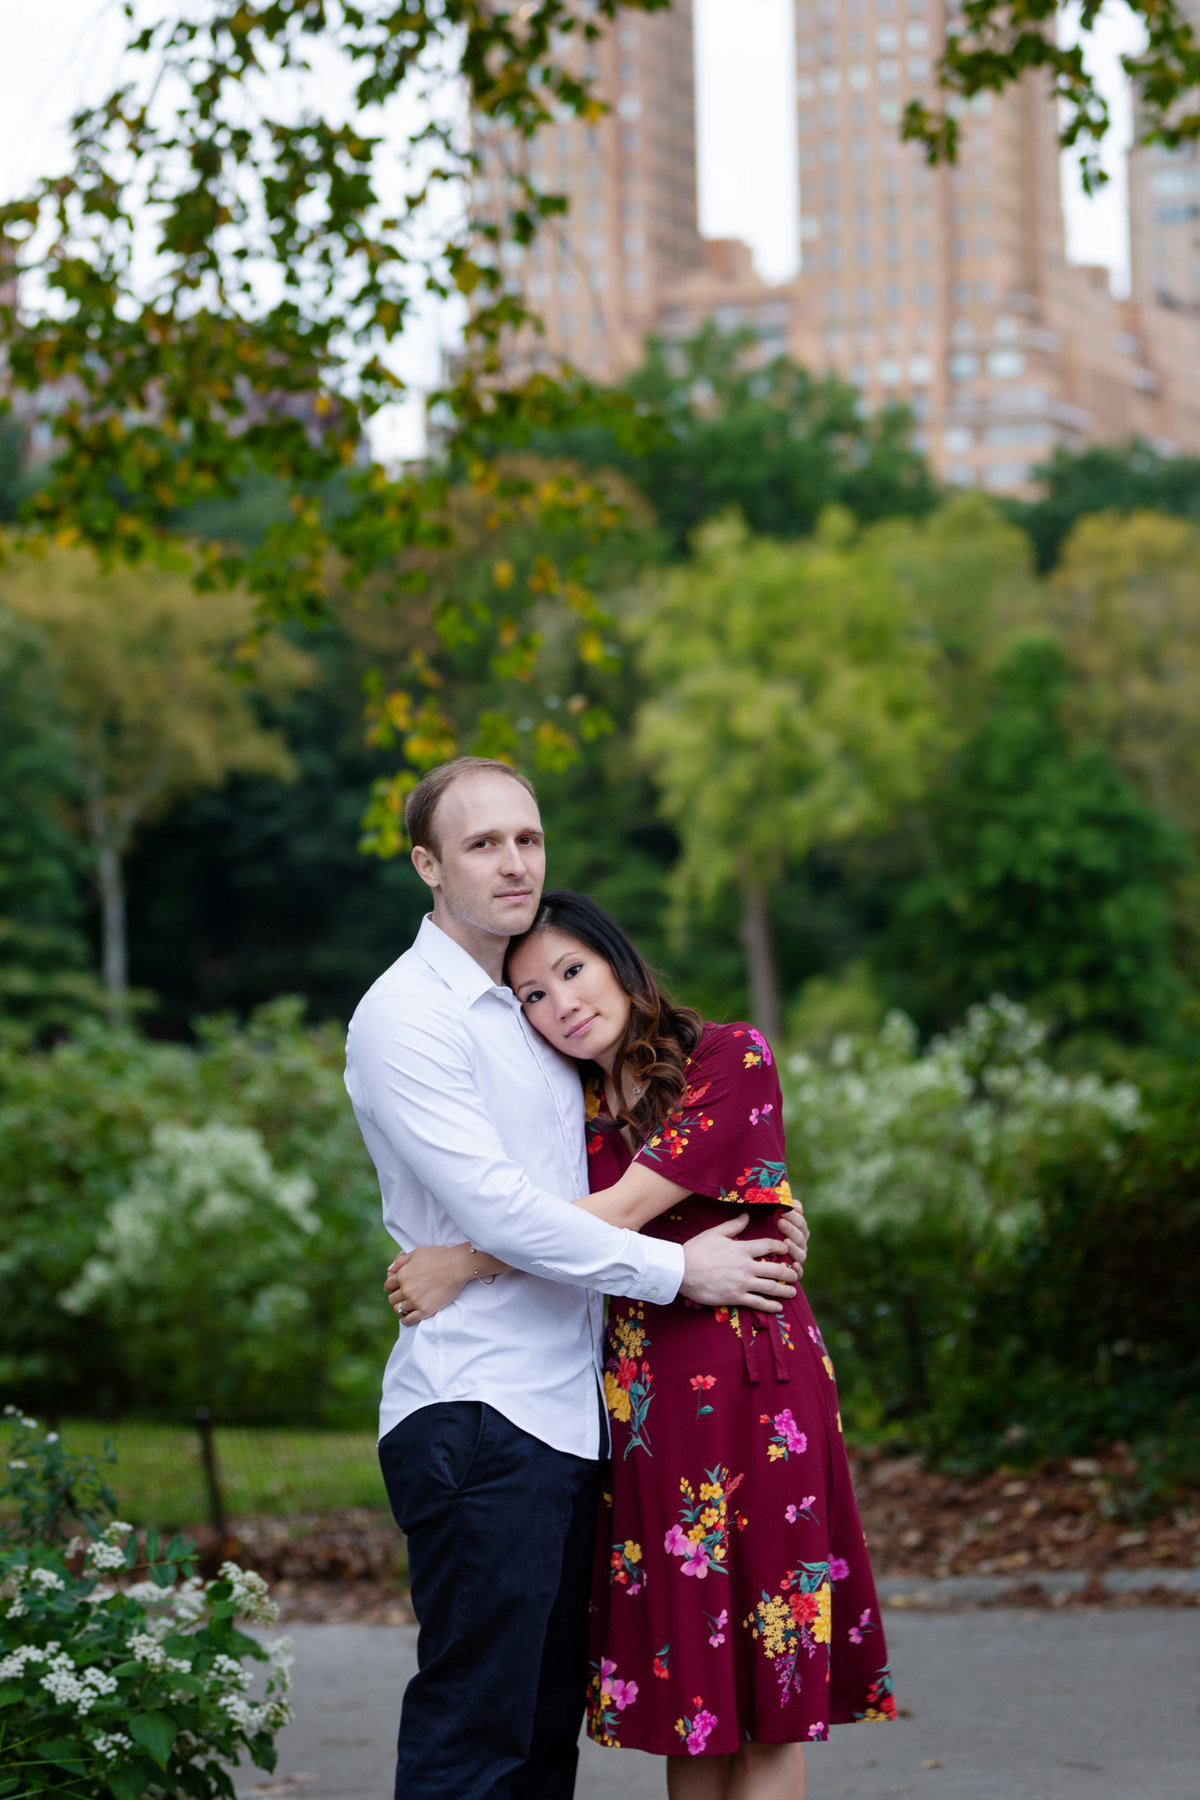 Central-Park-Engagement-Mariya-Stecklair-Photography-125